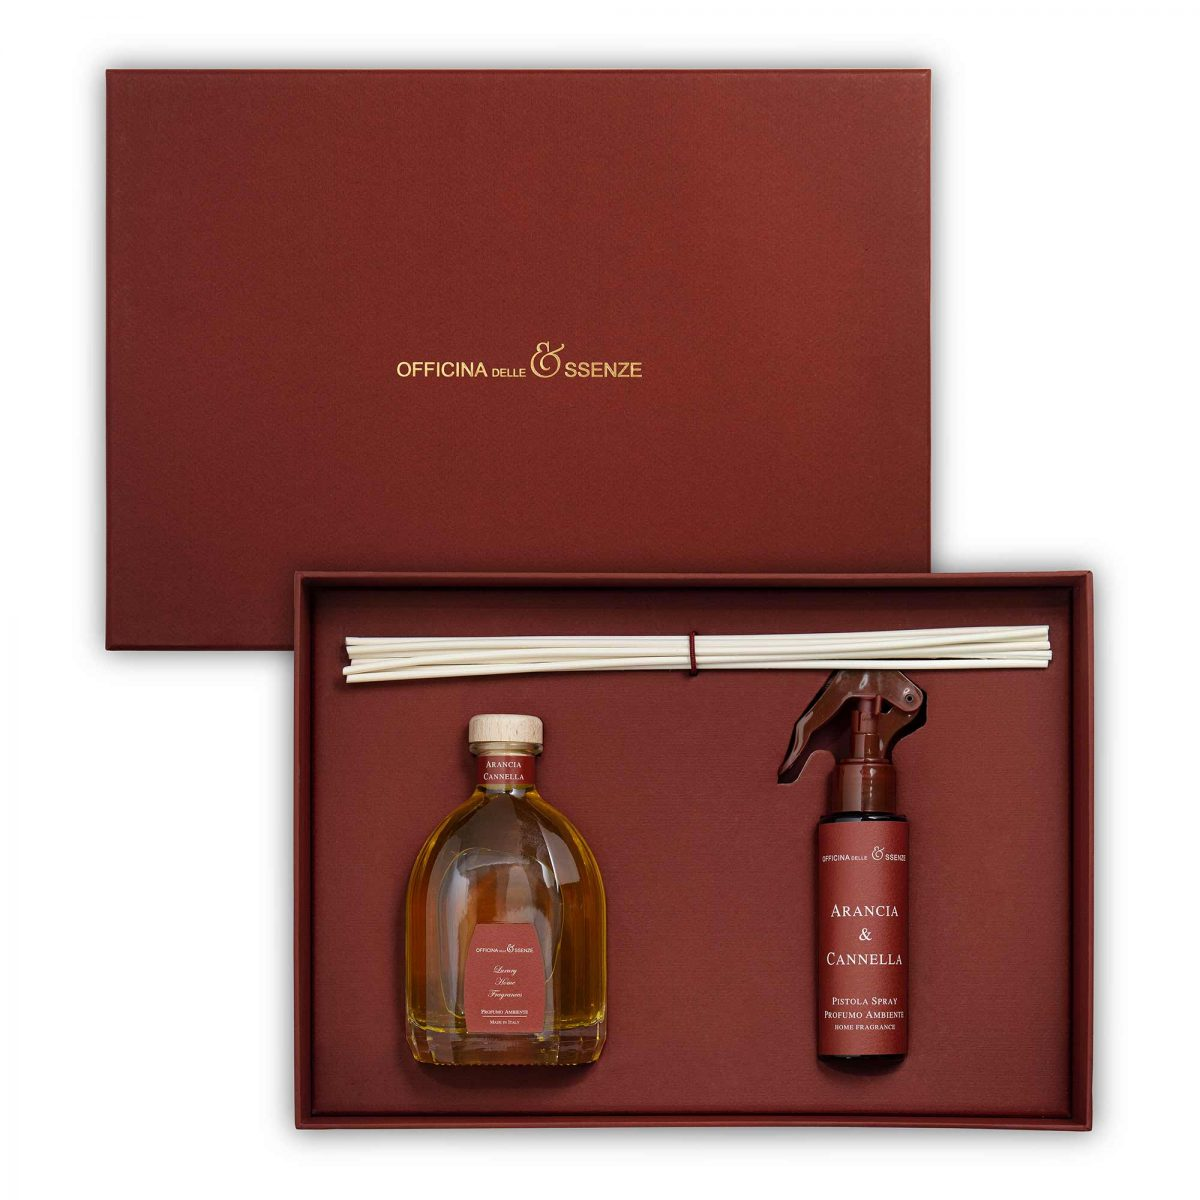 The gift box contains a 250 ml Home reed Diffuser and a 100 ml Room spray